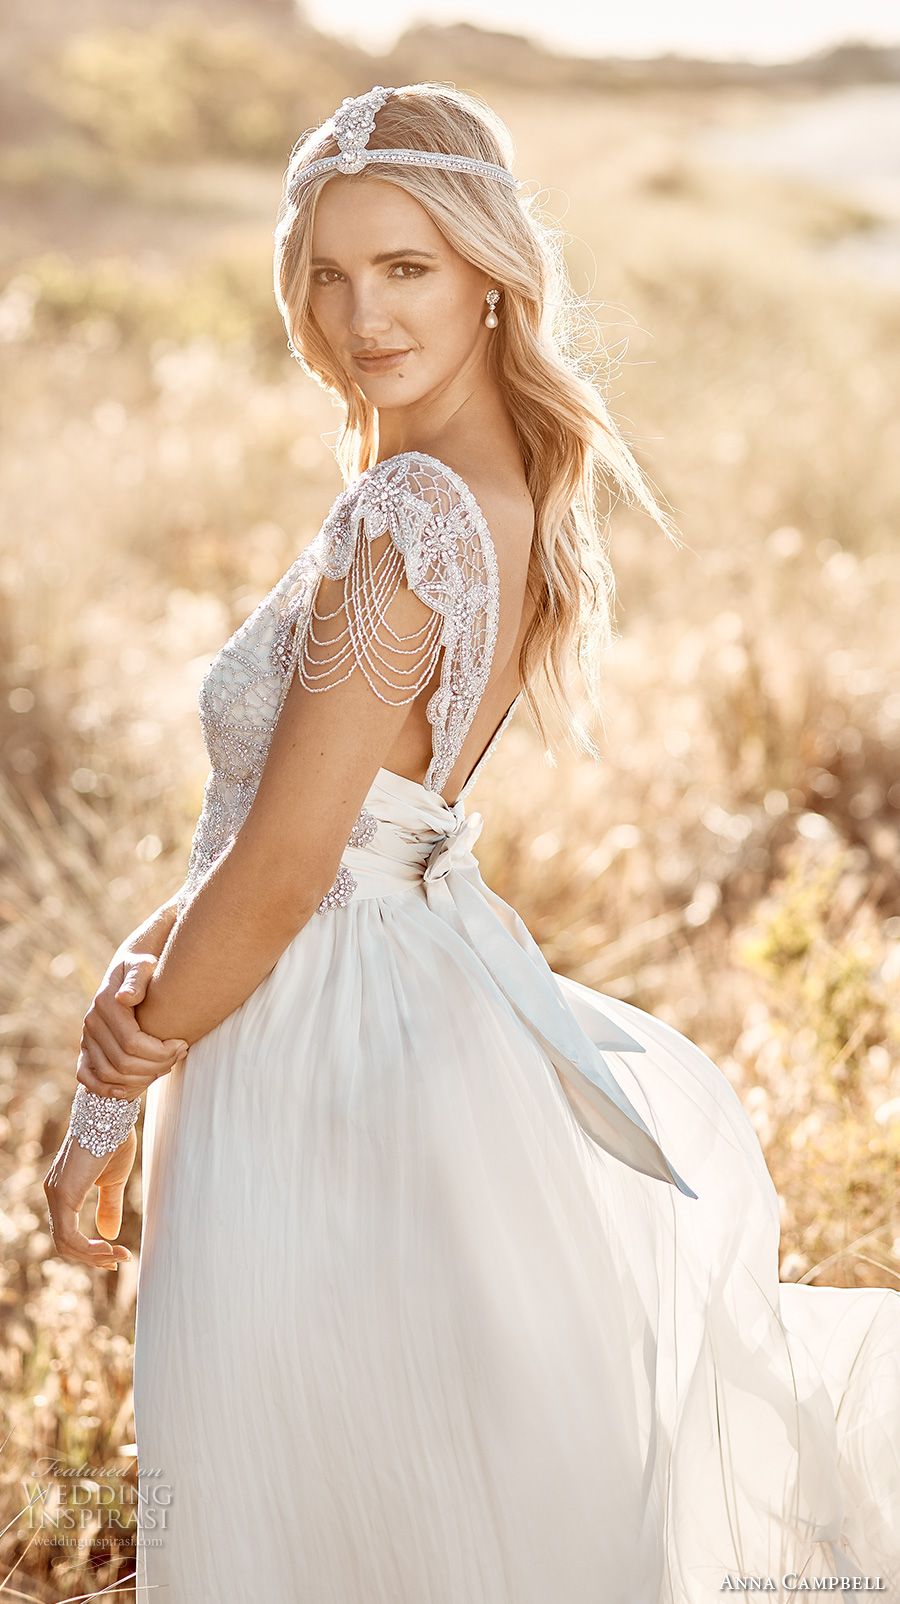 Anna Campbell 2017 Bridal Cap Sleeves Scoop Neck Heavily Embellished Bodice Bohemian Empire Wedding Dress